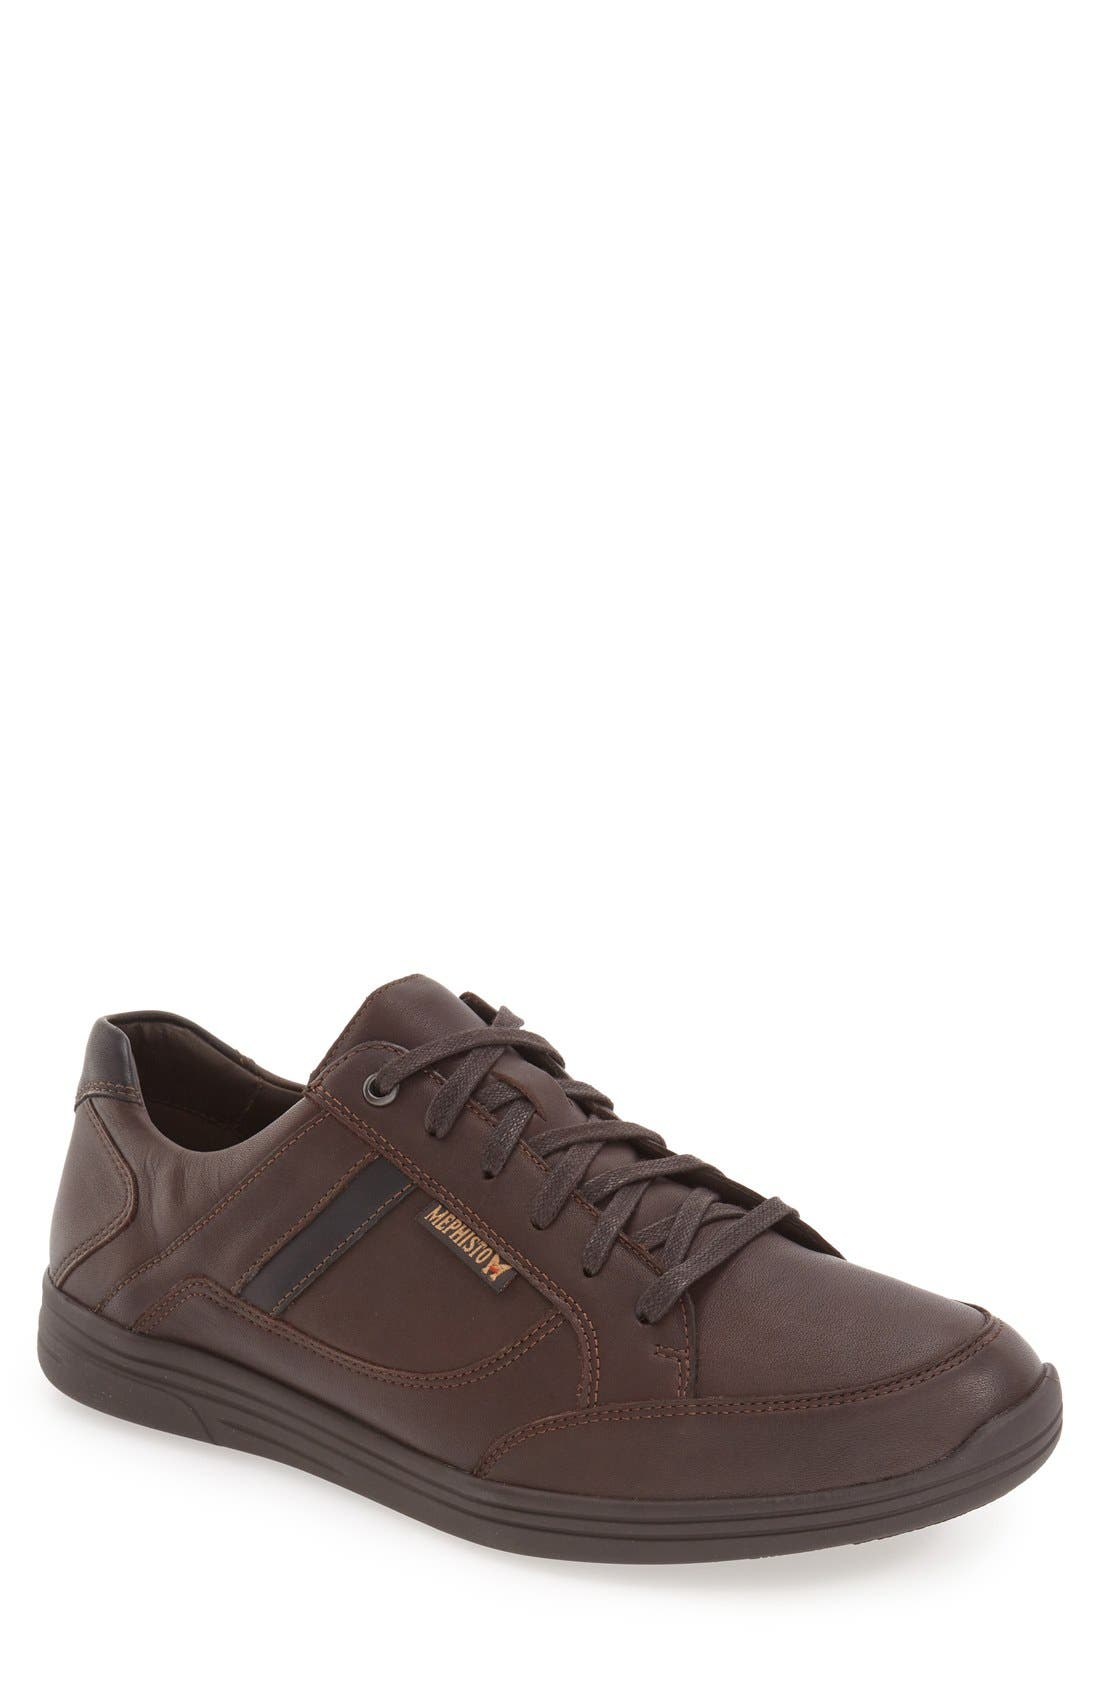 Main Image - Mephisto 'Frank GoWing' Sneaker (Men)